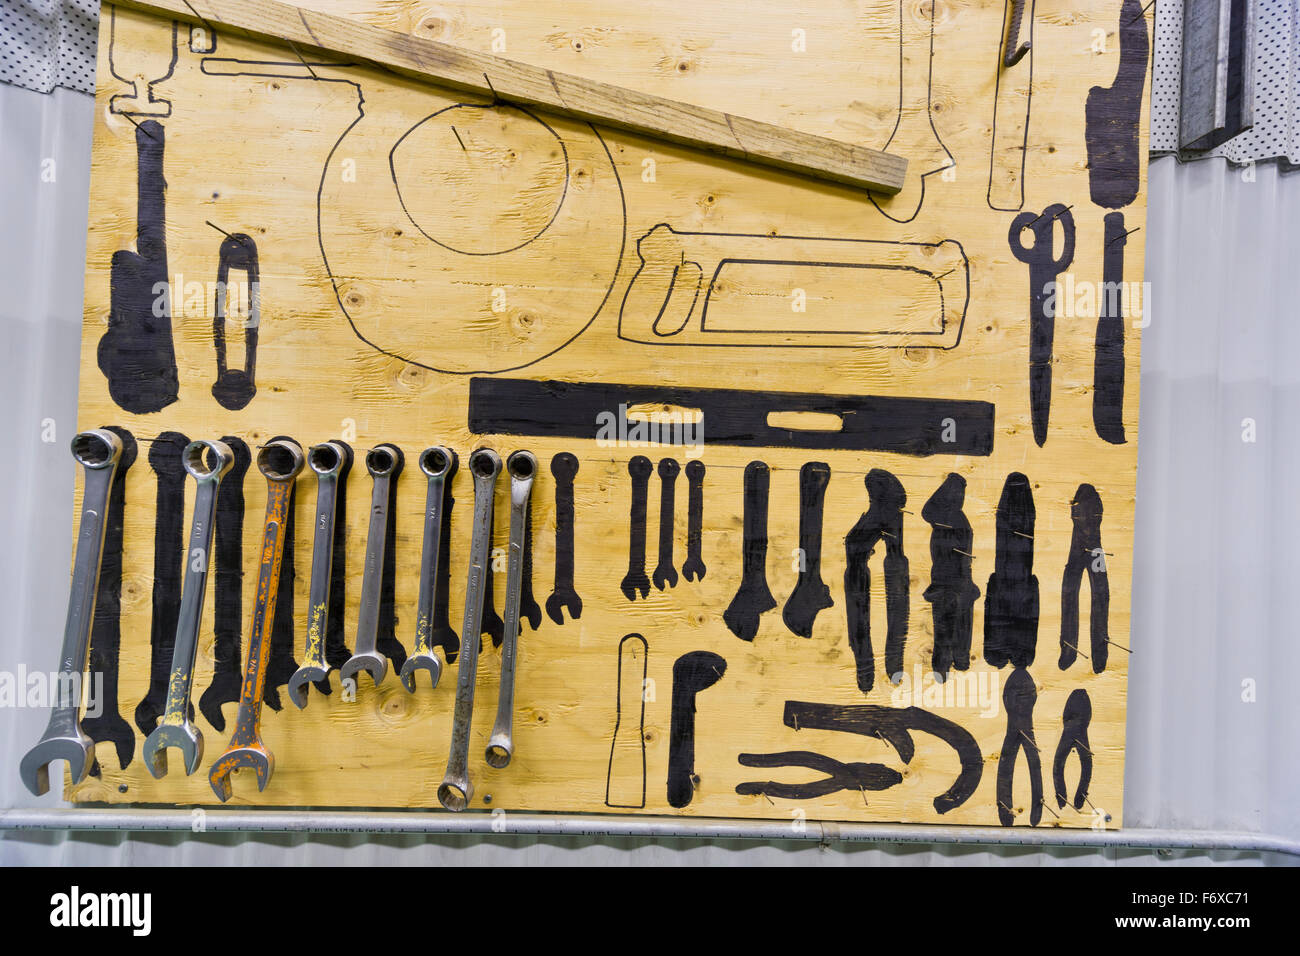 Tools and their outlines hang on a wall inside an electrical power ...